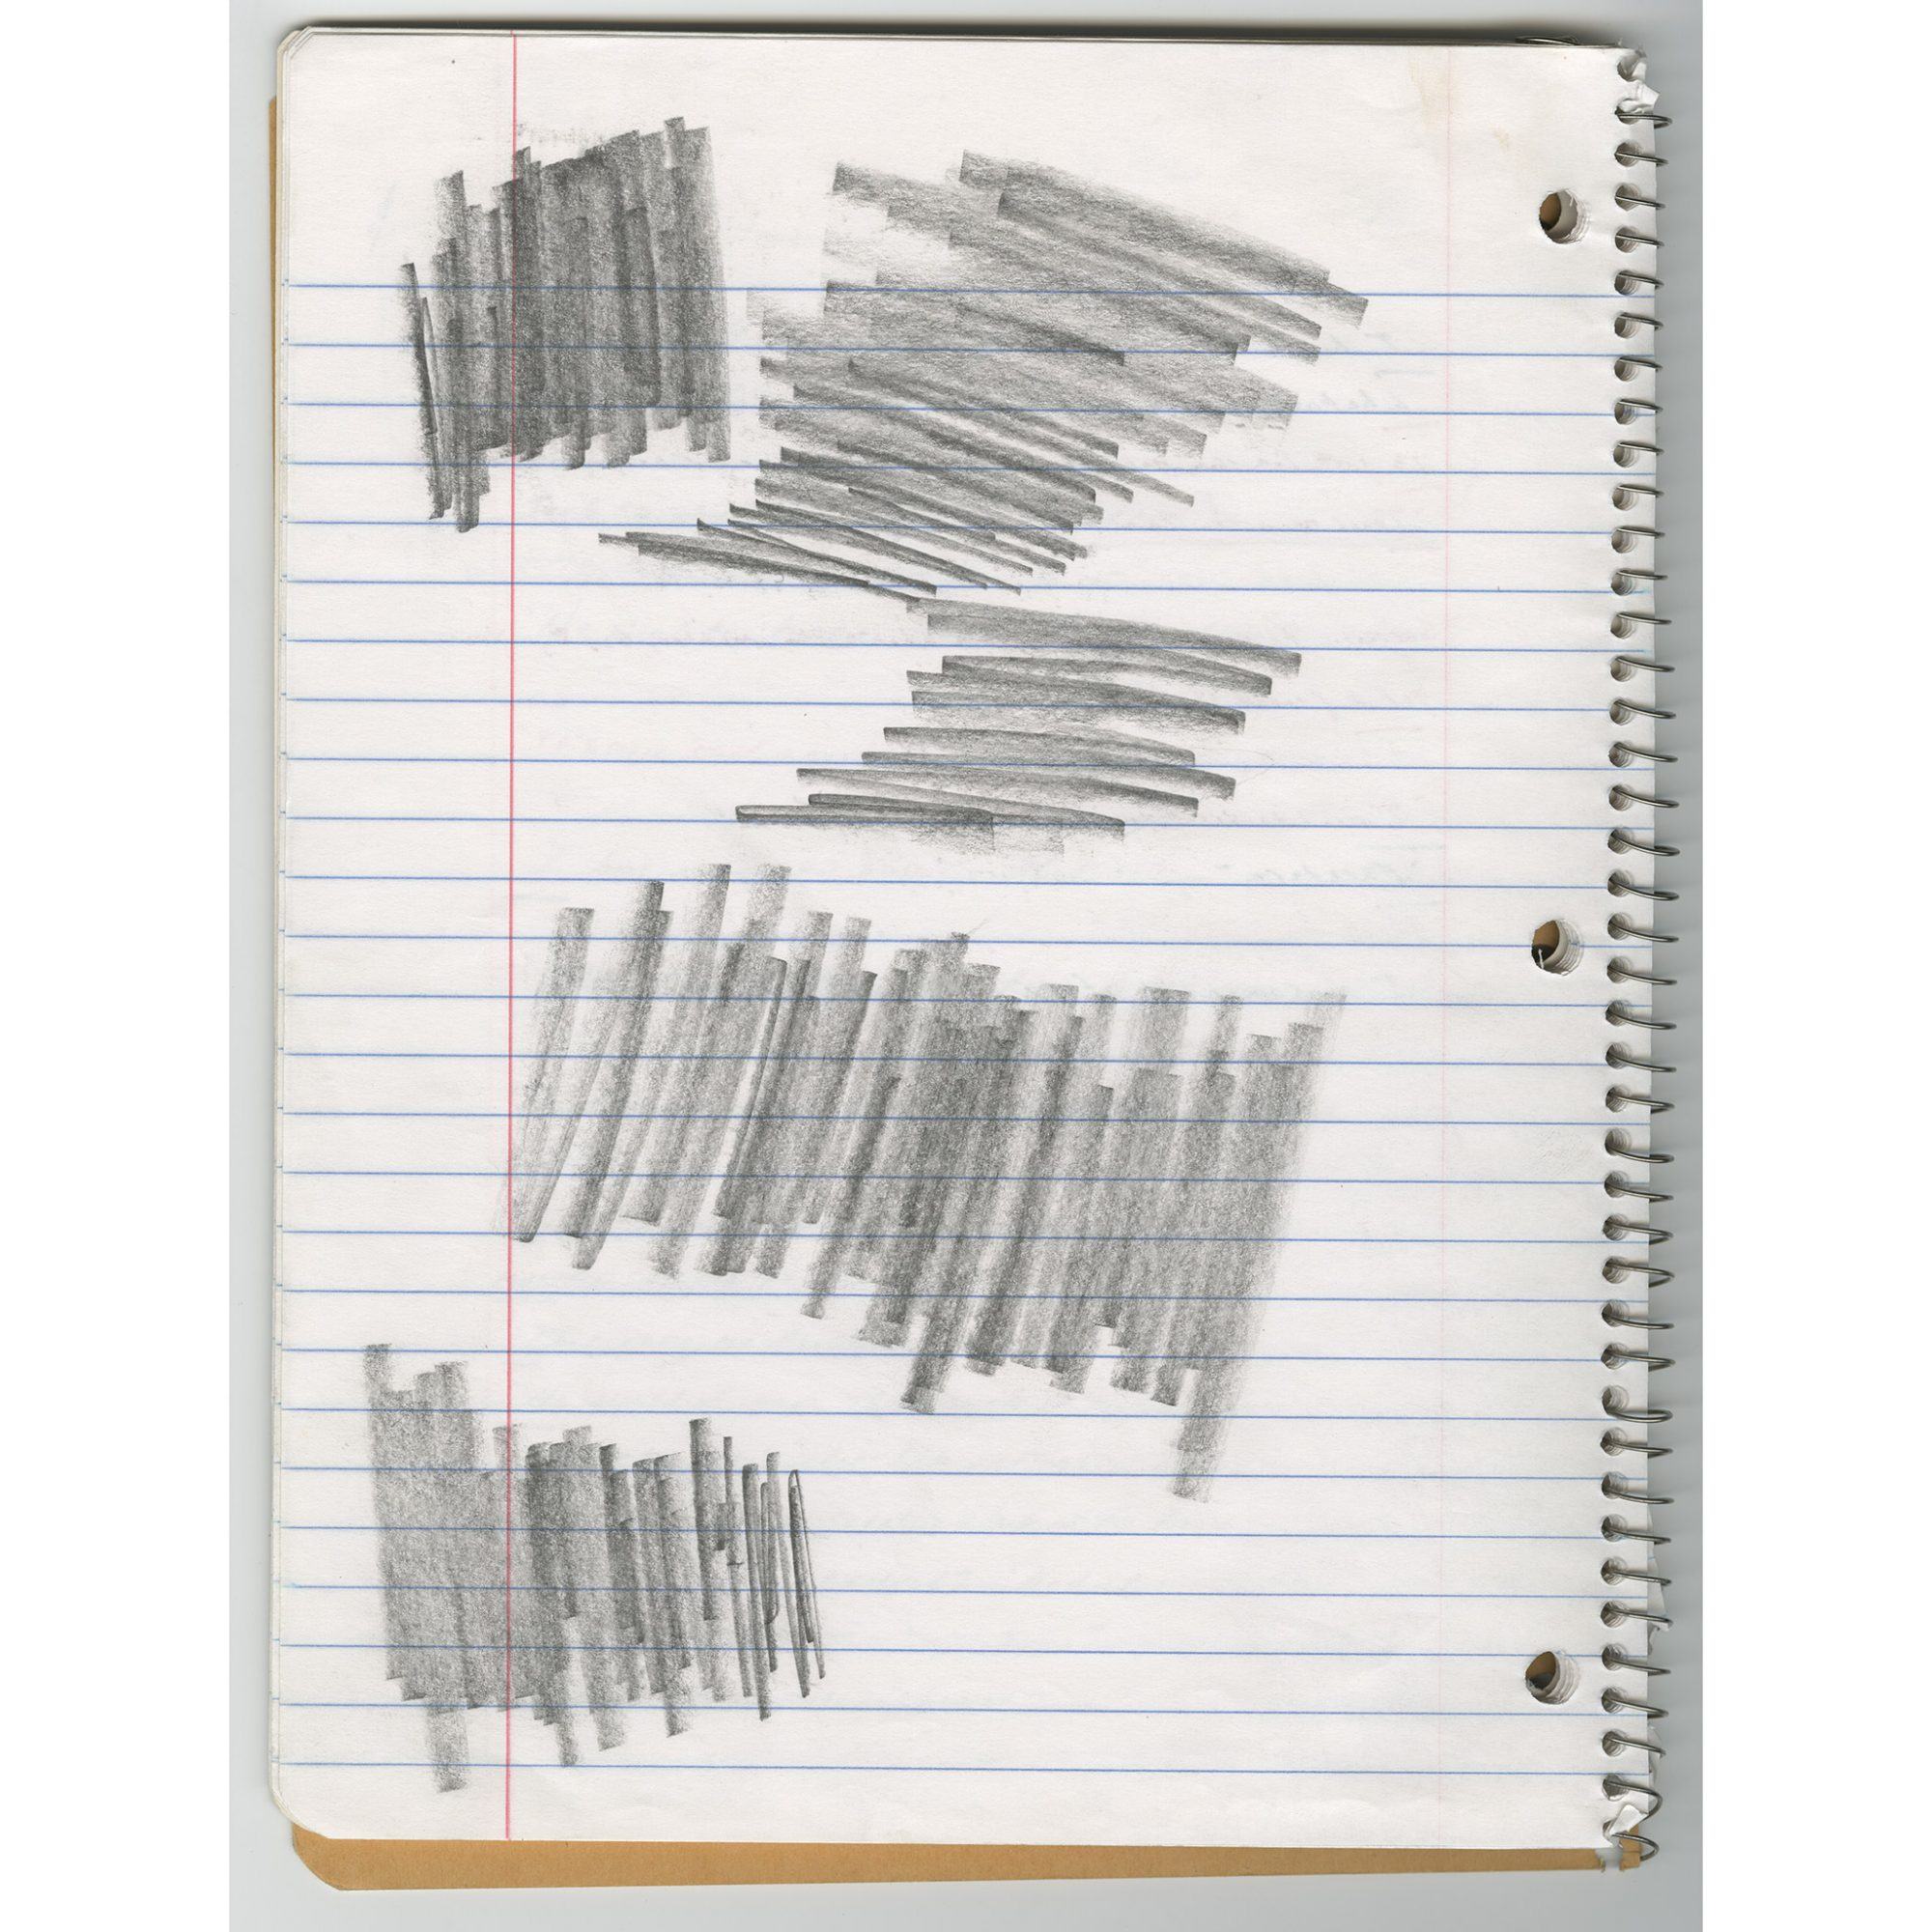 """Page from the Pale King materials, """"Midwesternism"""" notebook, undated. Manuscript notebook, 10 1/2 x 8 1/4 in. (26.7 x 21.0 cm). Harry Ransom Center, The University of Texas at Austin. Image used with permission from the David Foster Wallace Literary Trust"""